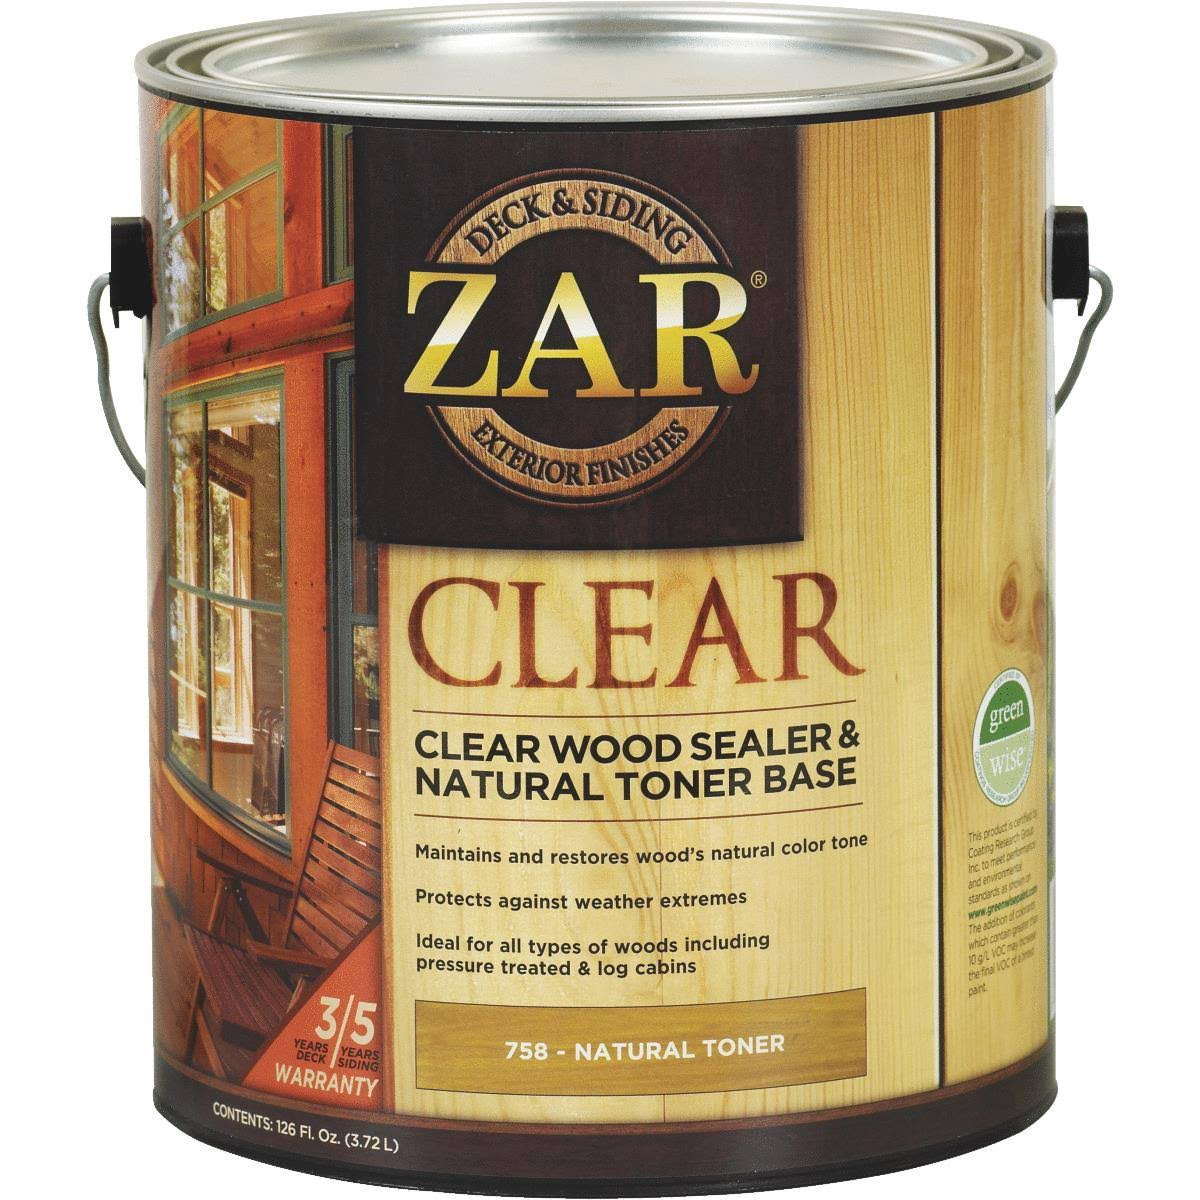 Zar Deck & Siding Clear Wood Sealer & Stain 1 gal., Clear